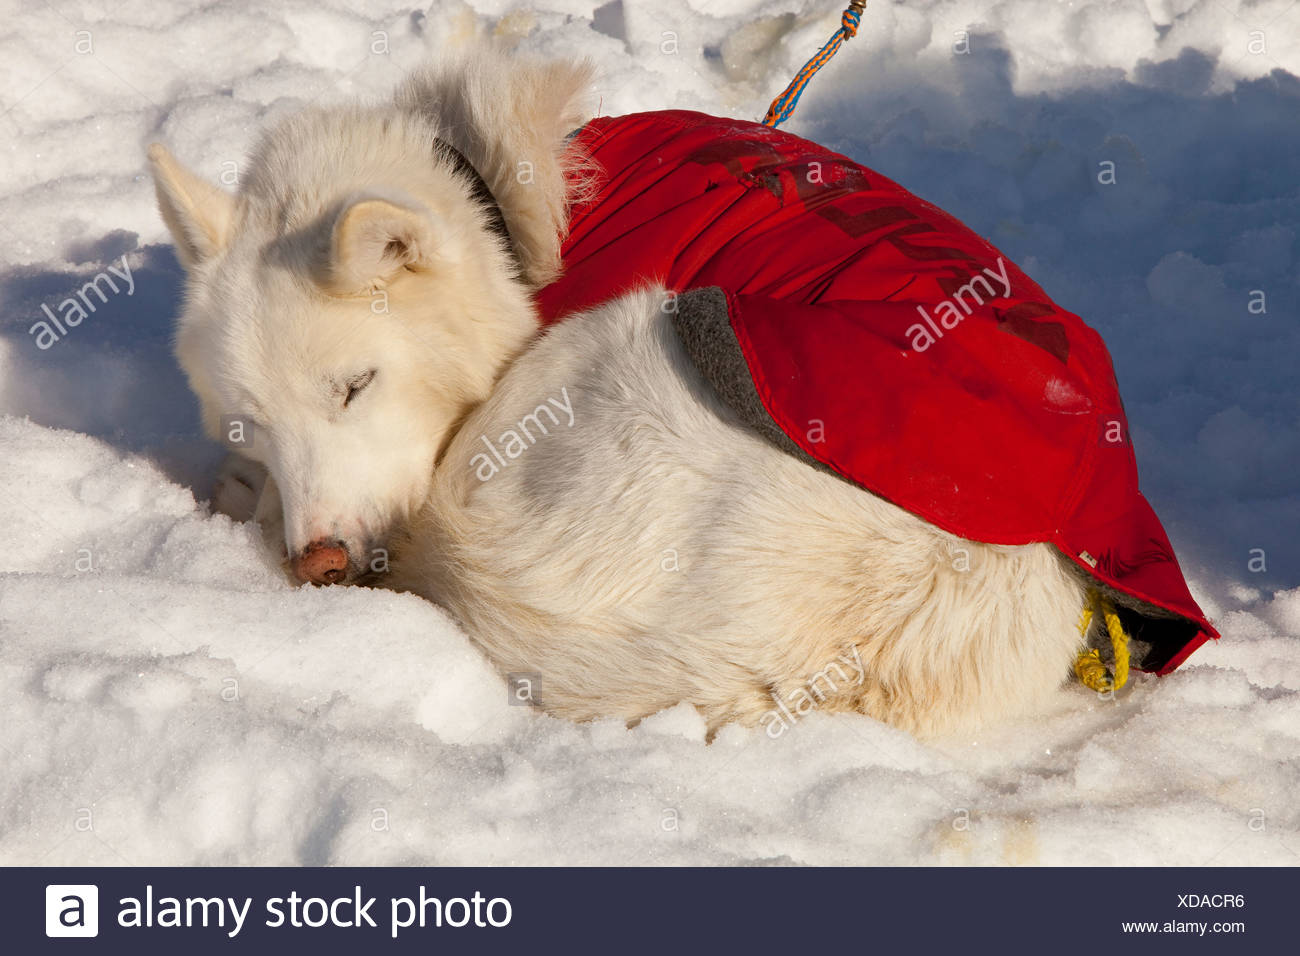 White sled dog with dog coat resting, sleeping in snow and sun, curled up, stake out cable, Alaskan Husky, Yukon Territory - Stock Image